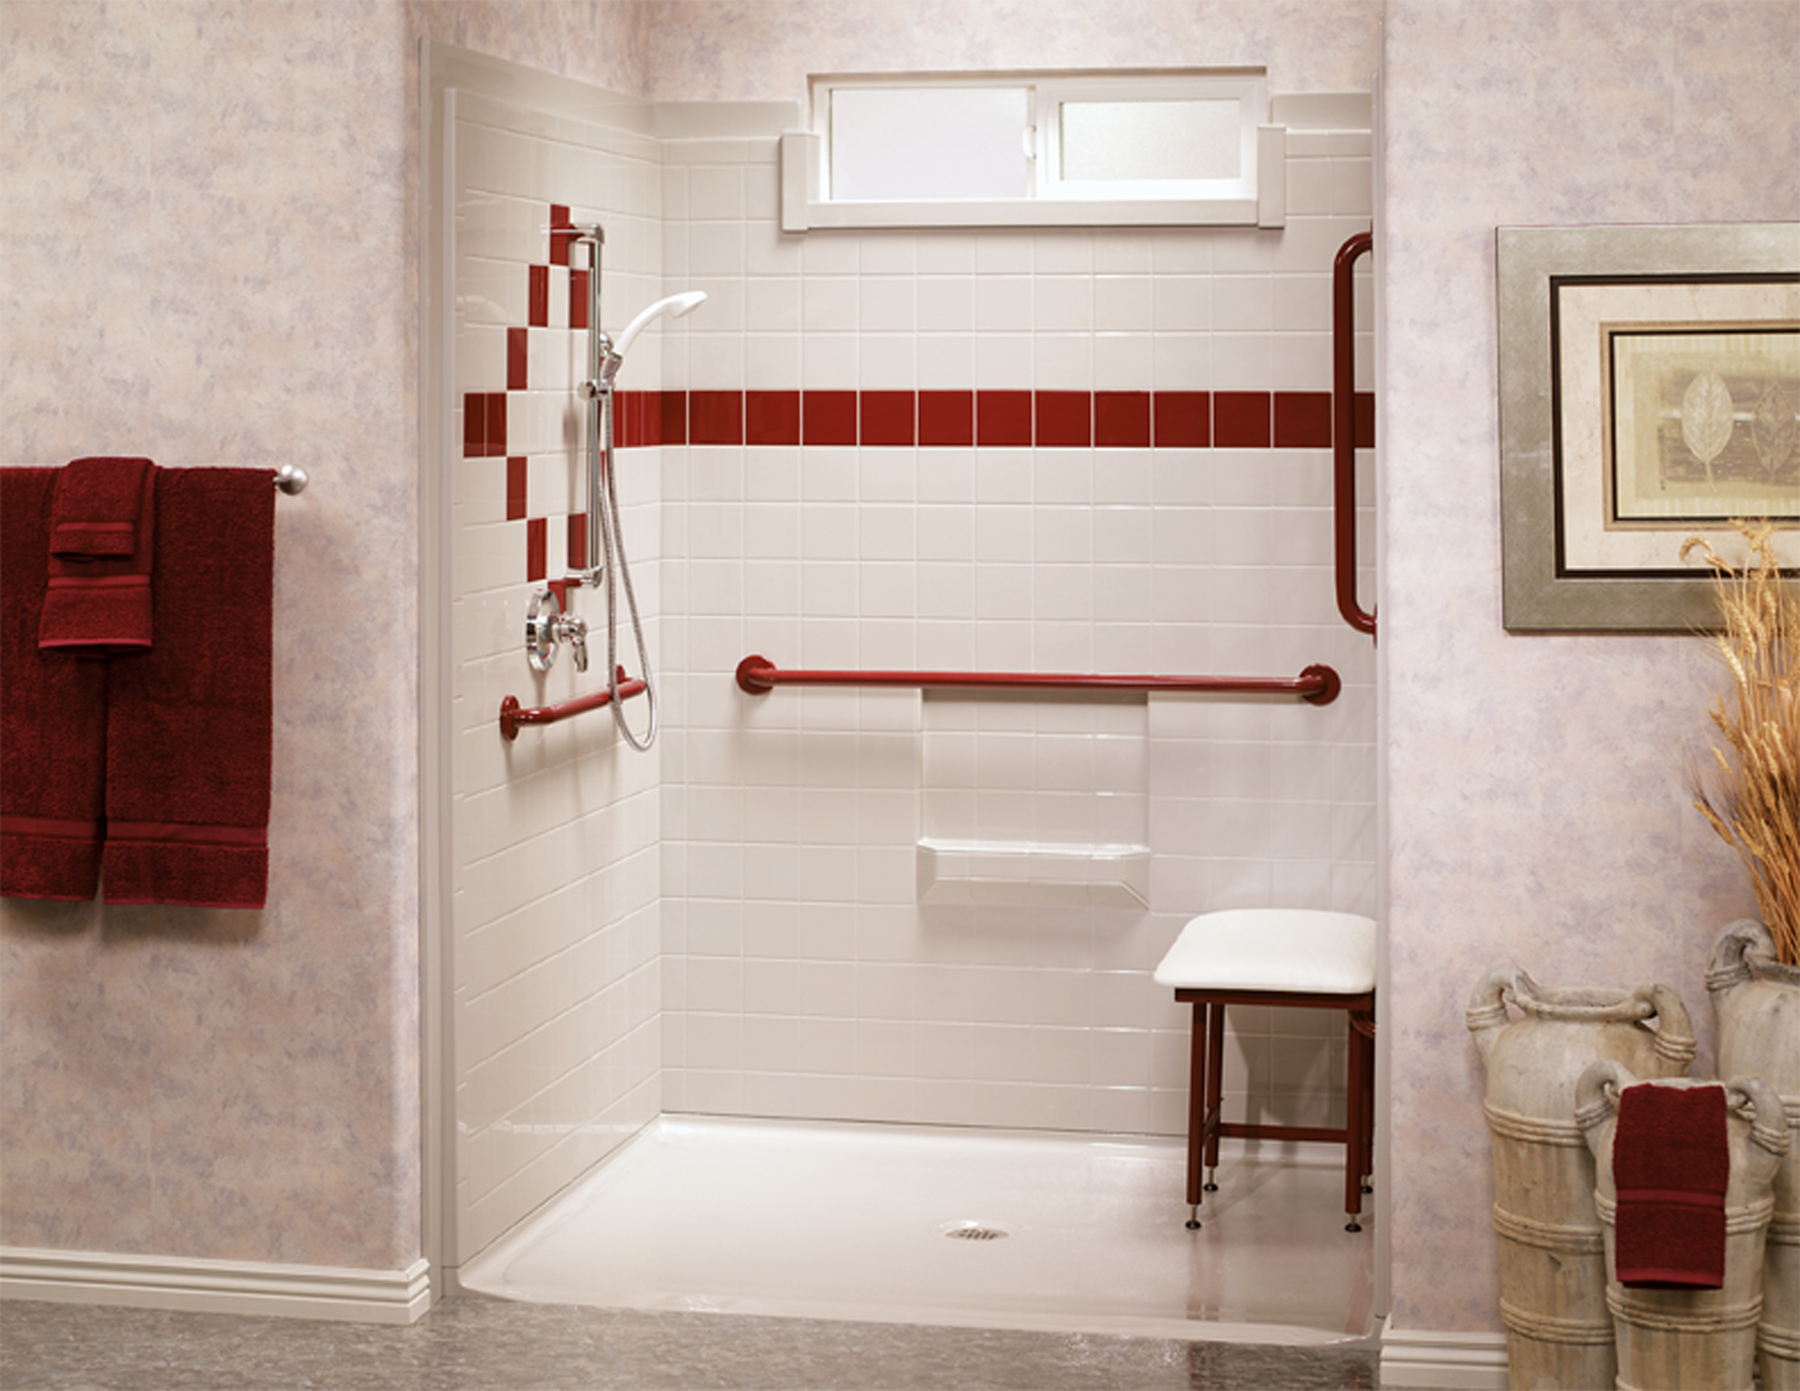 Norco Accessible Bathing and Bathroom Safety Solutions